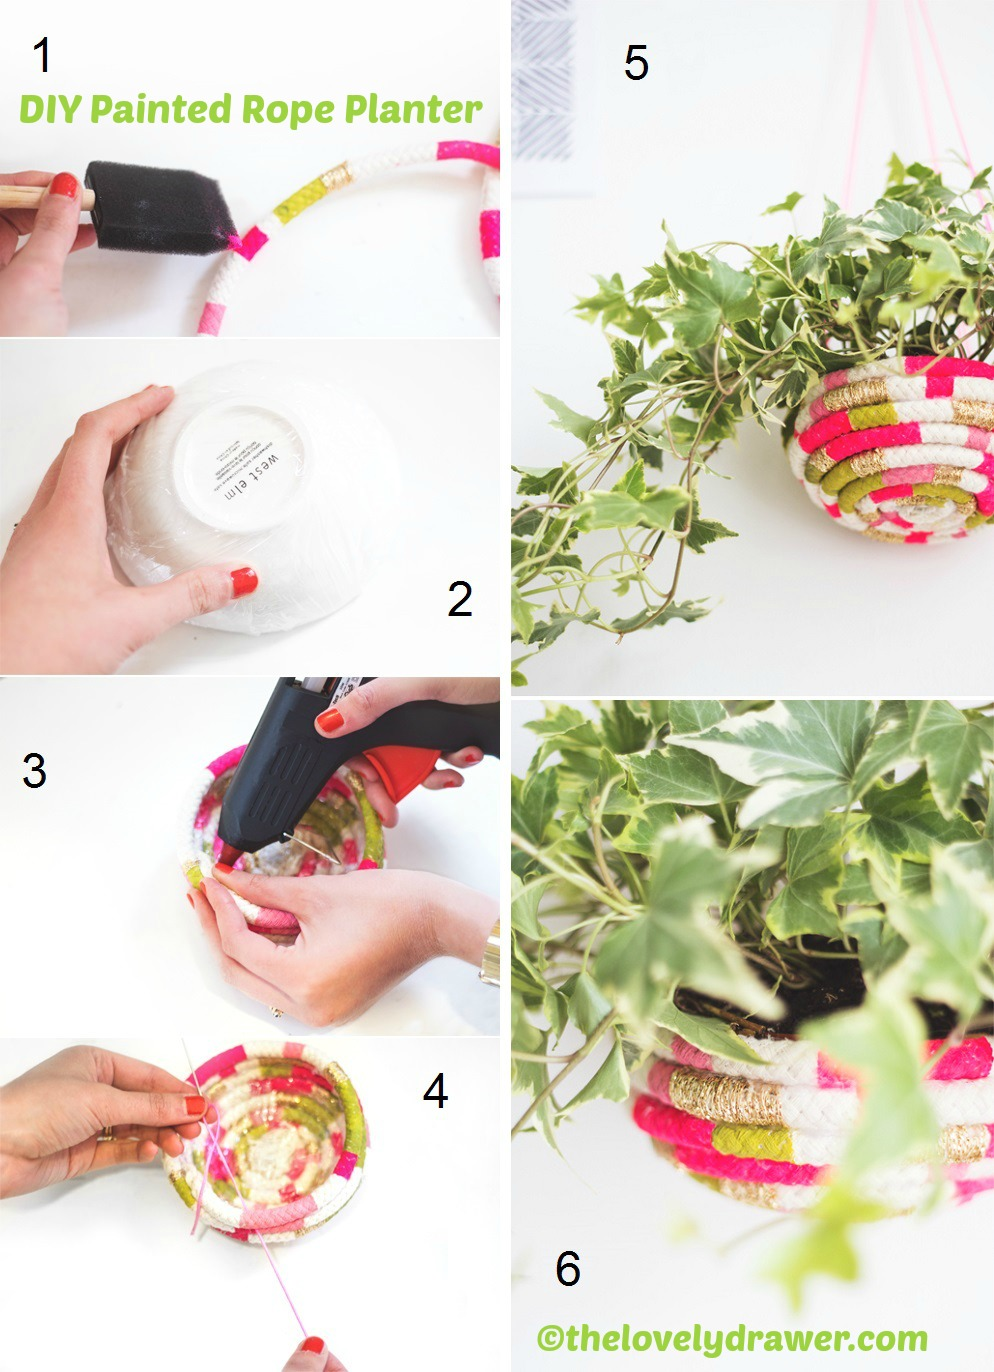 How to make a Painted Rope Planter